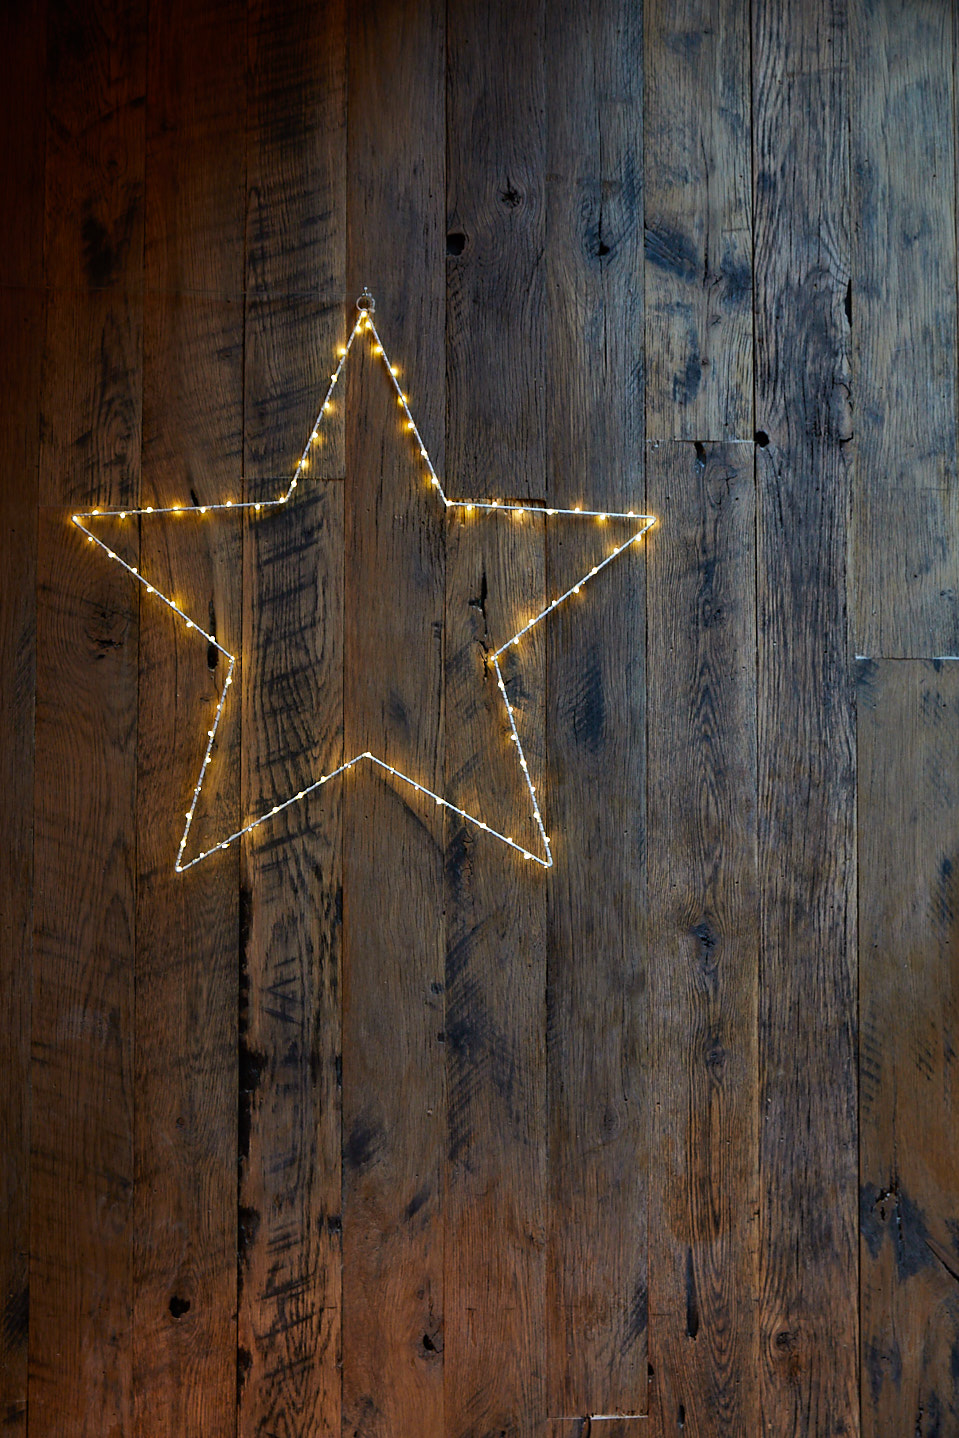 Fairy light star against rustic reclaimed wood wall